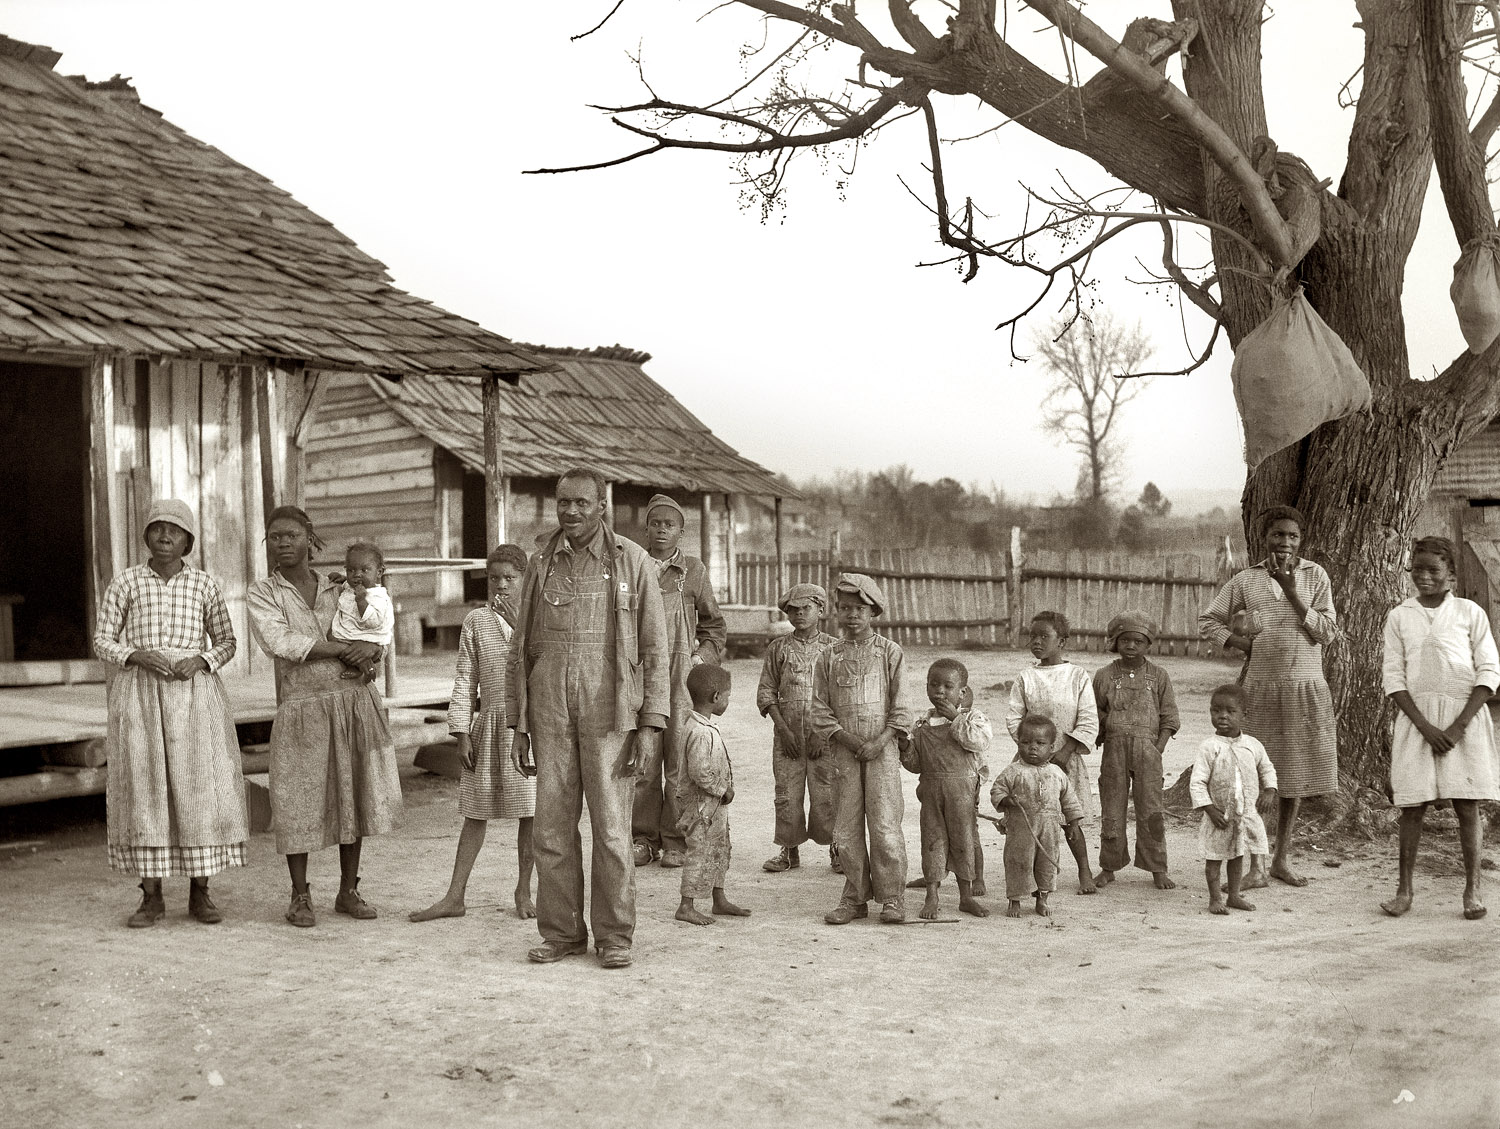 February 1937. Gee's Bend, Alabama. Descendants of former slaves of the Pettway Plantation. They are still living under primitive conditions there. Meat in sacks hangs from tree limbs to be cured.